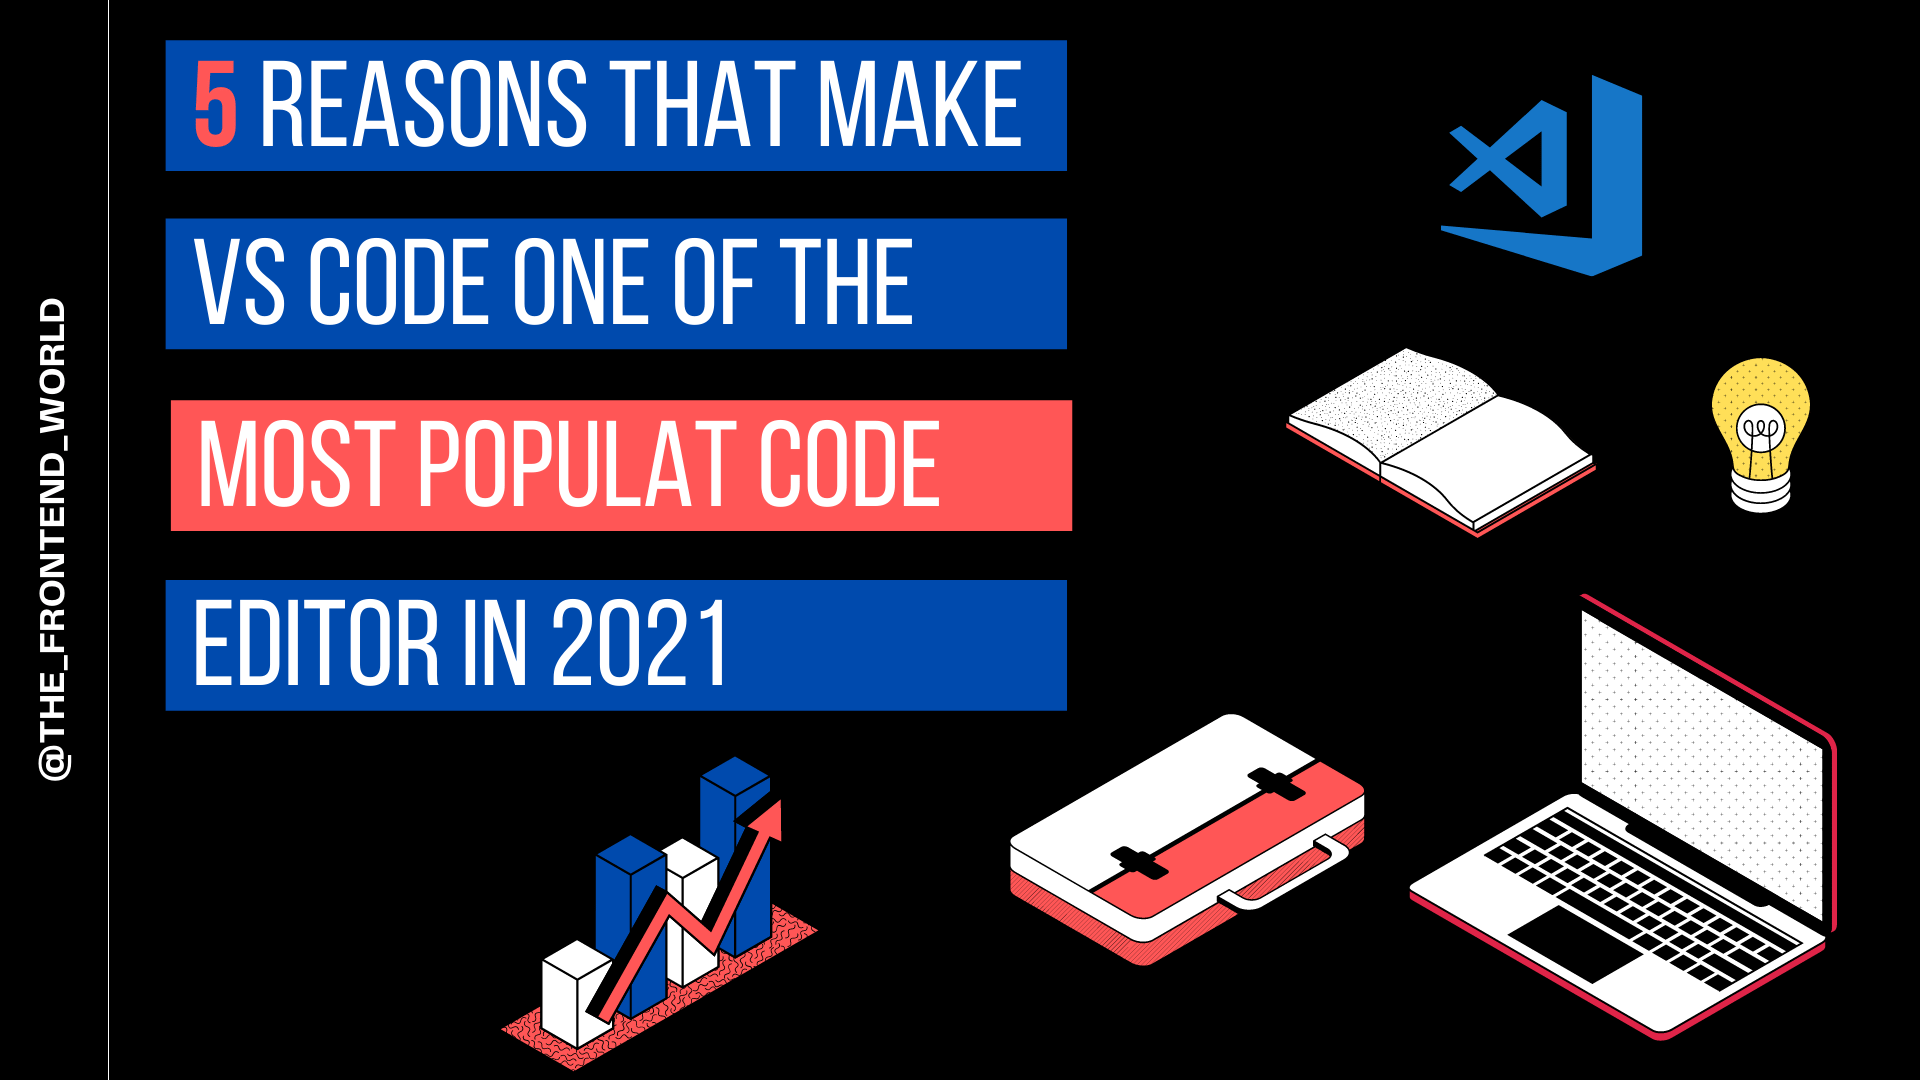 5 Reasons that make Visual Studio Code one of the most popular code editors in 2021